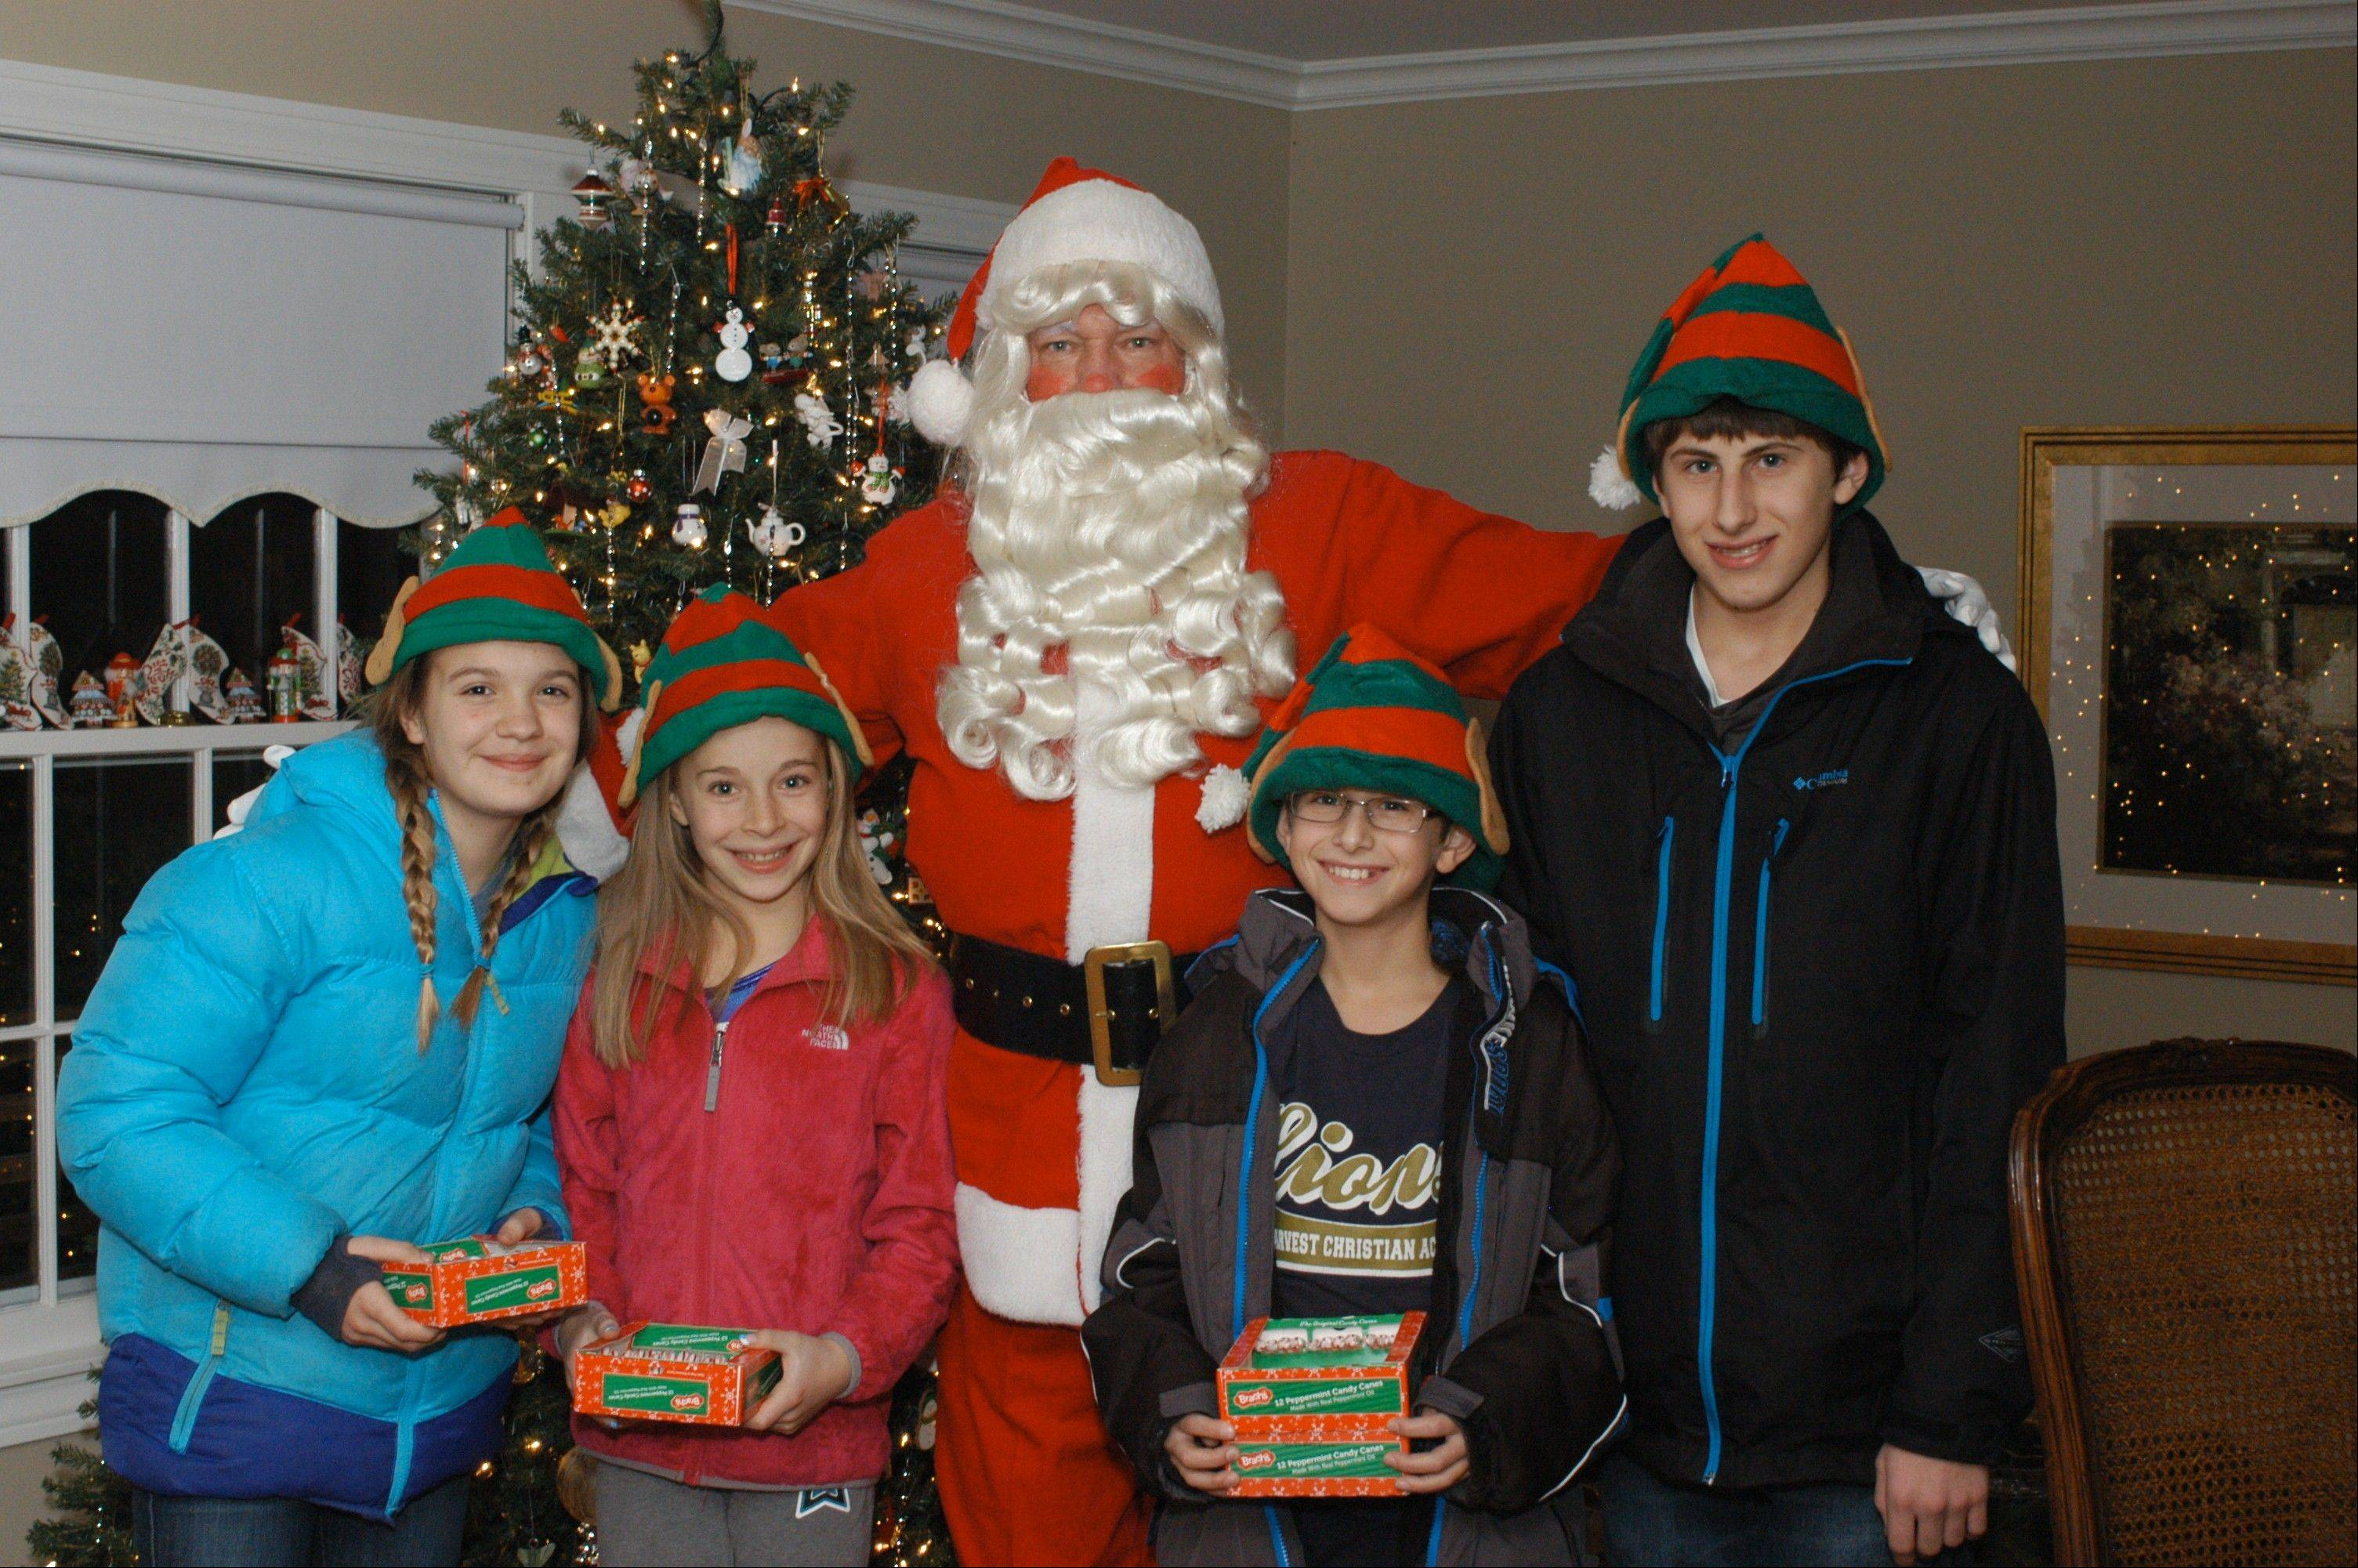 Santa, Paul Zillman of Palatine, finds his way to the right houses in the Willow Wood subdivision with the help of his elves, from left, Emmi Antonik, Samantha Mogensen, Blake Nudo and Brent Nudo.